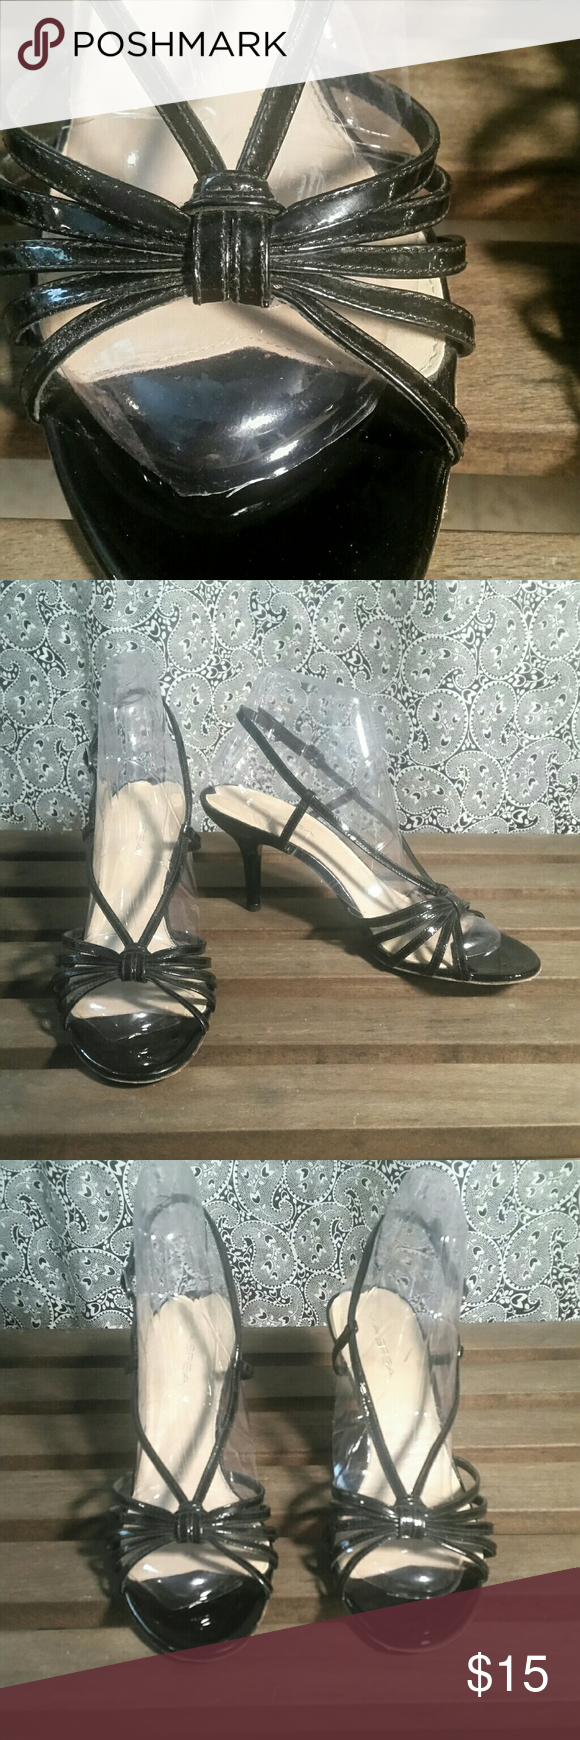 "Strappy Patent Heels Pretty patent leather strappy heels by Via Spiga. 3 1/2"" heels. Via Spiga Shoes Heels"